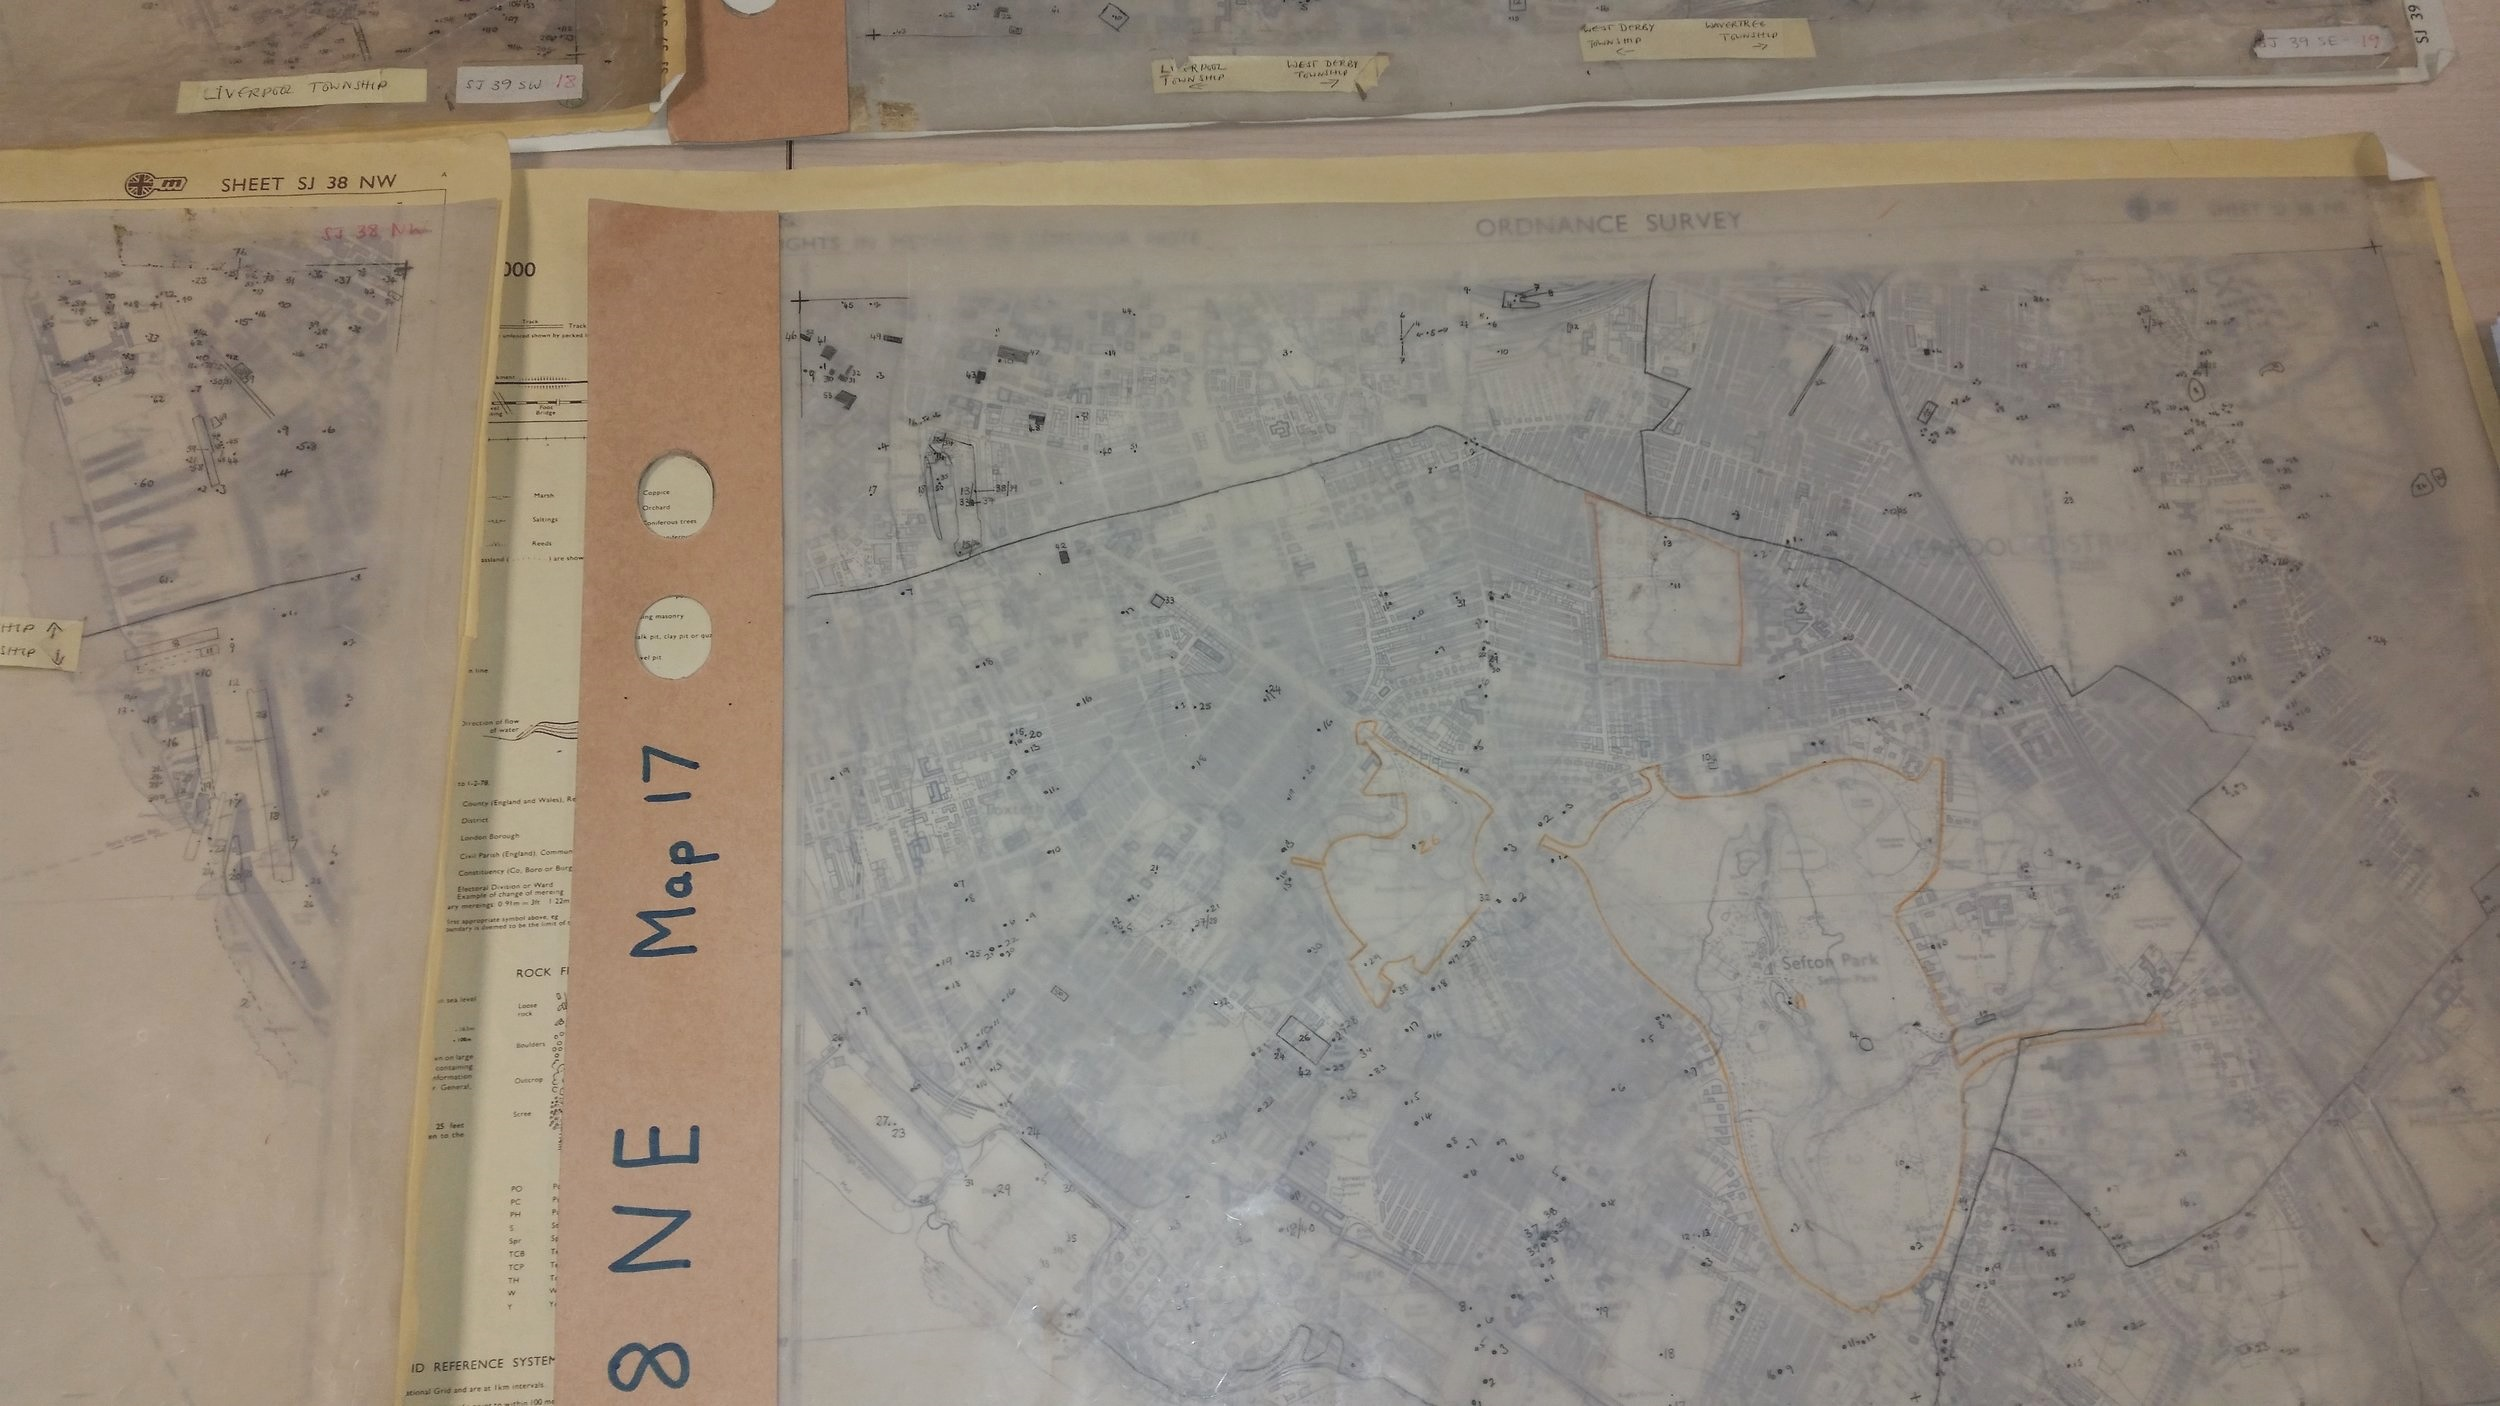 Tracing paper with notes in pencil covering the map, showing spots where we have information about that building or piece of land.